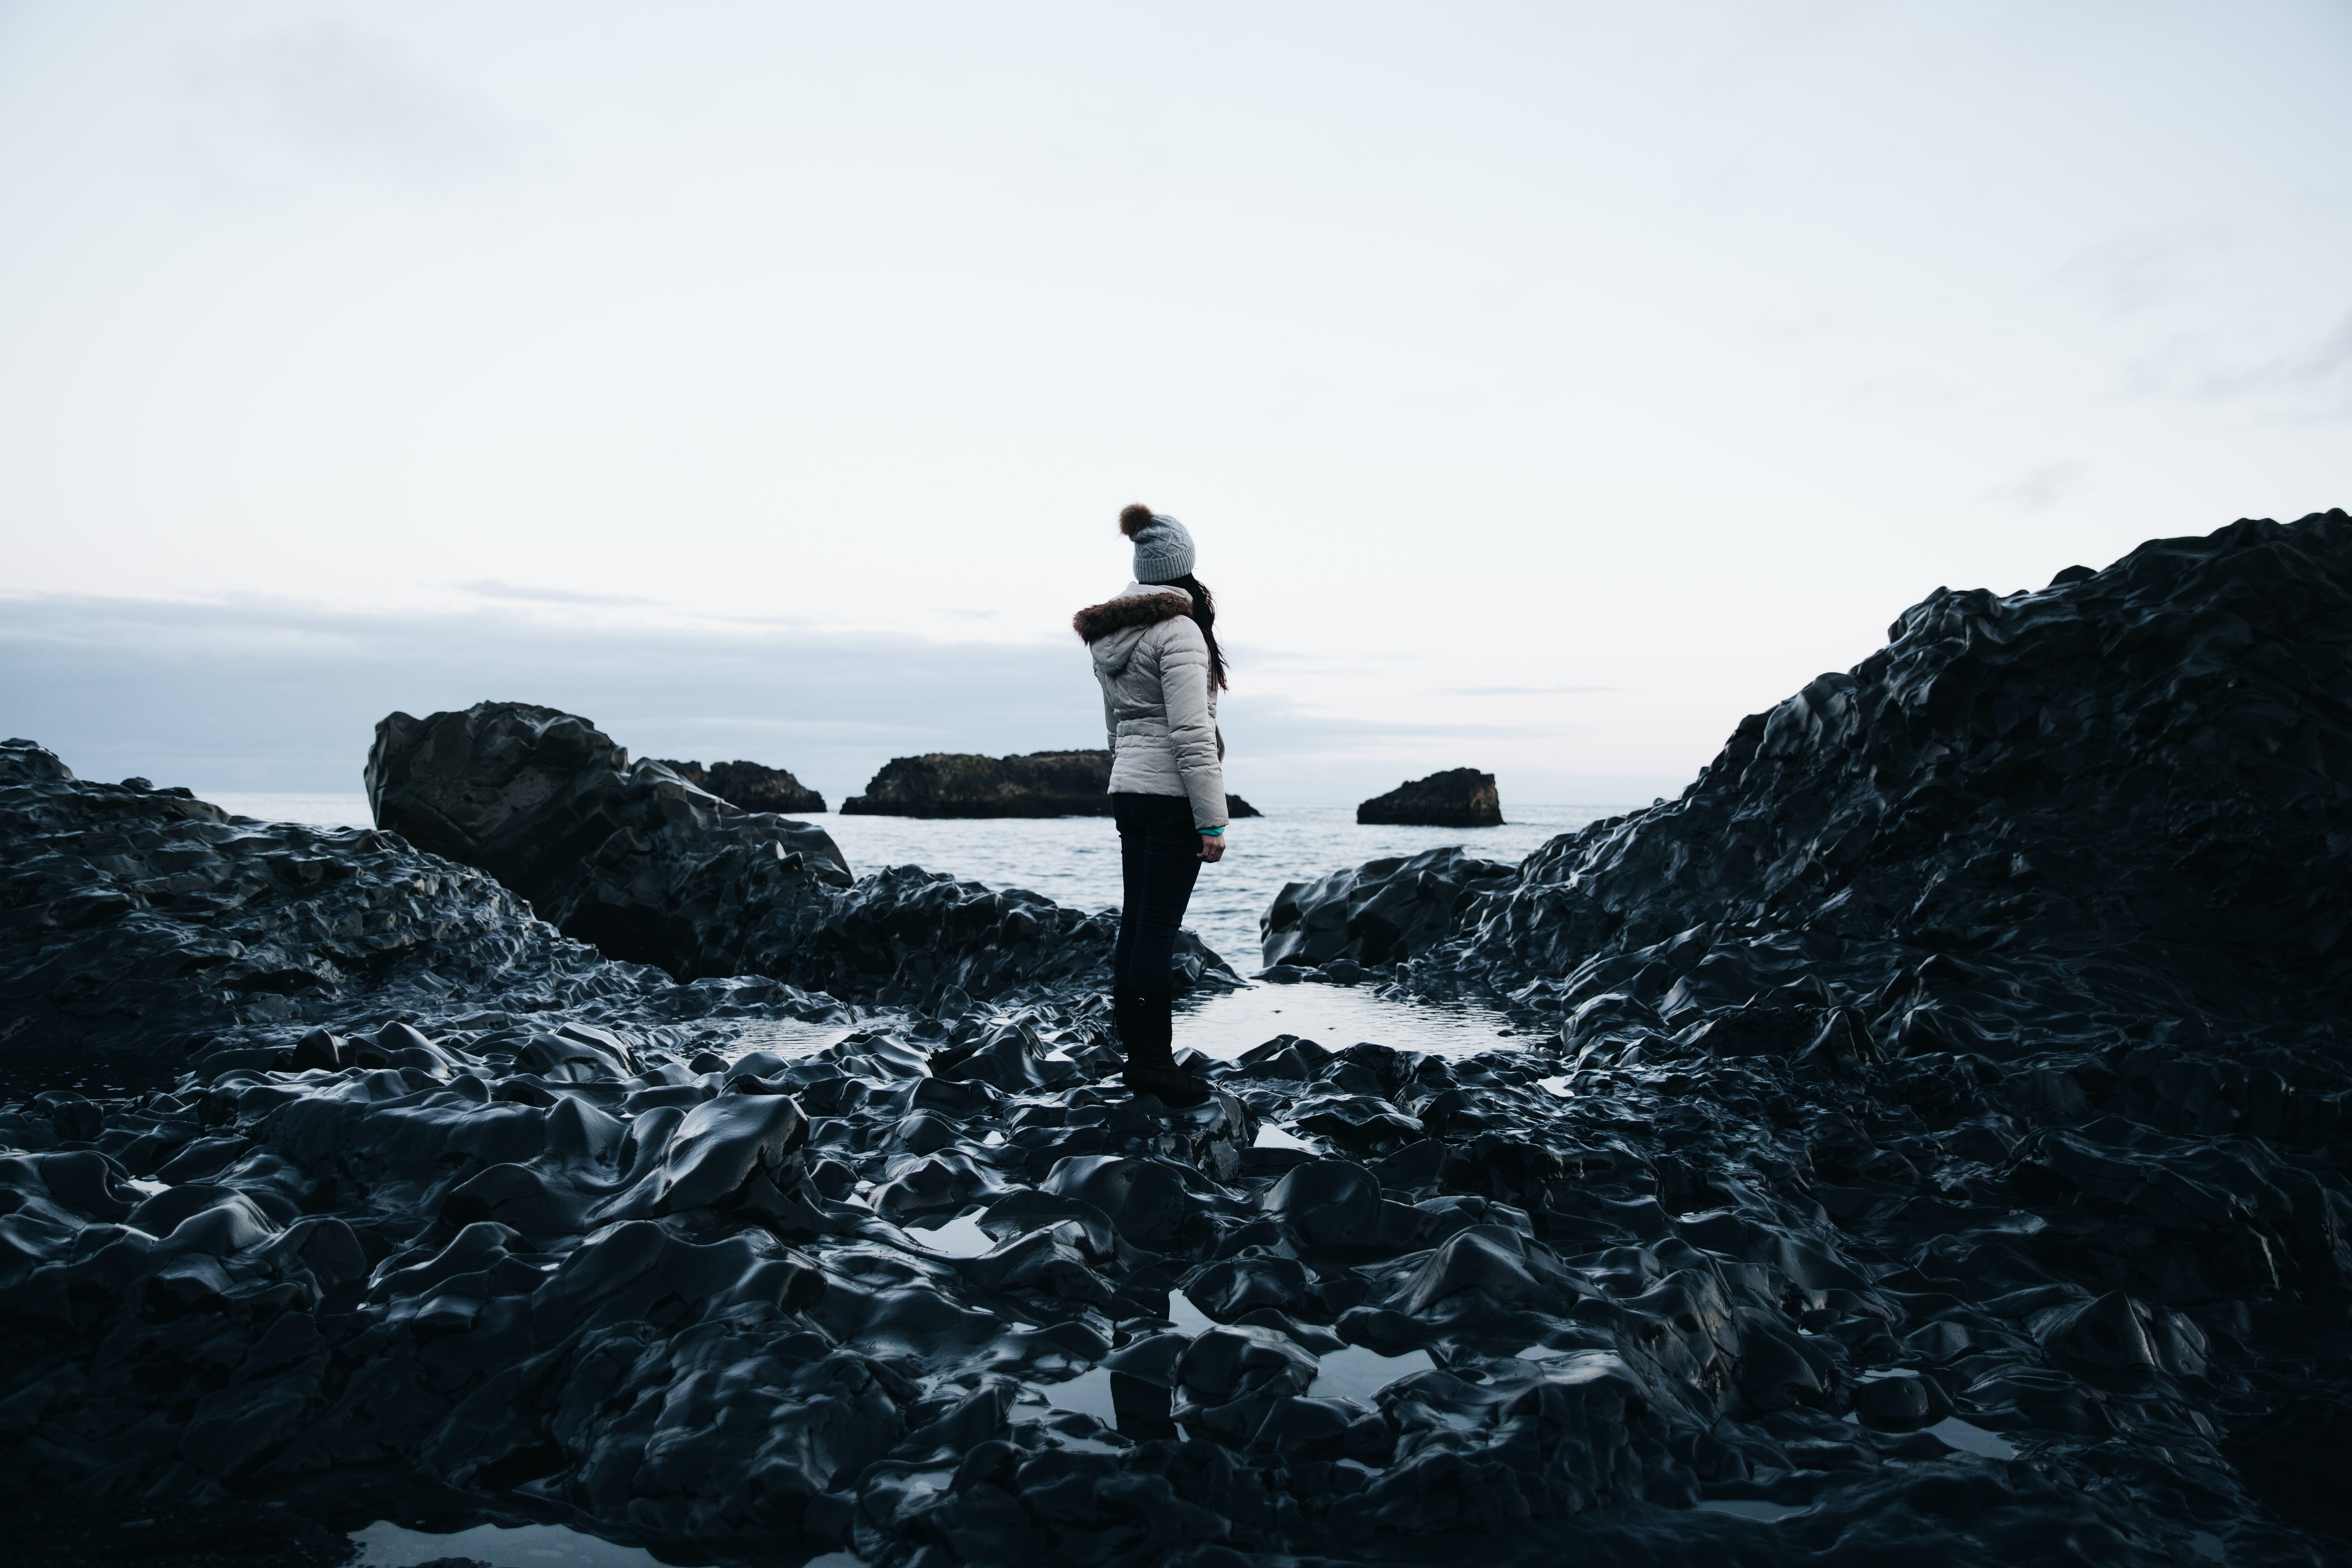 woman in hooded jacket standing on boulder looking at body of water